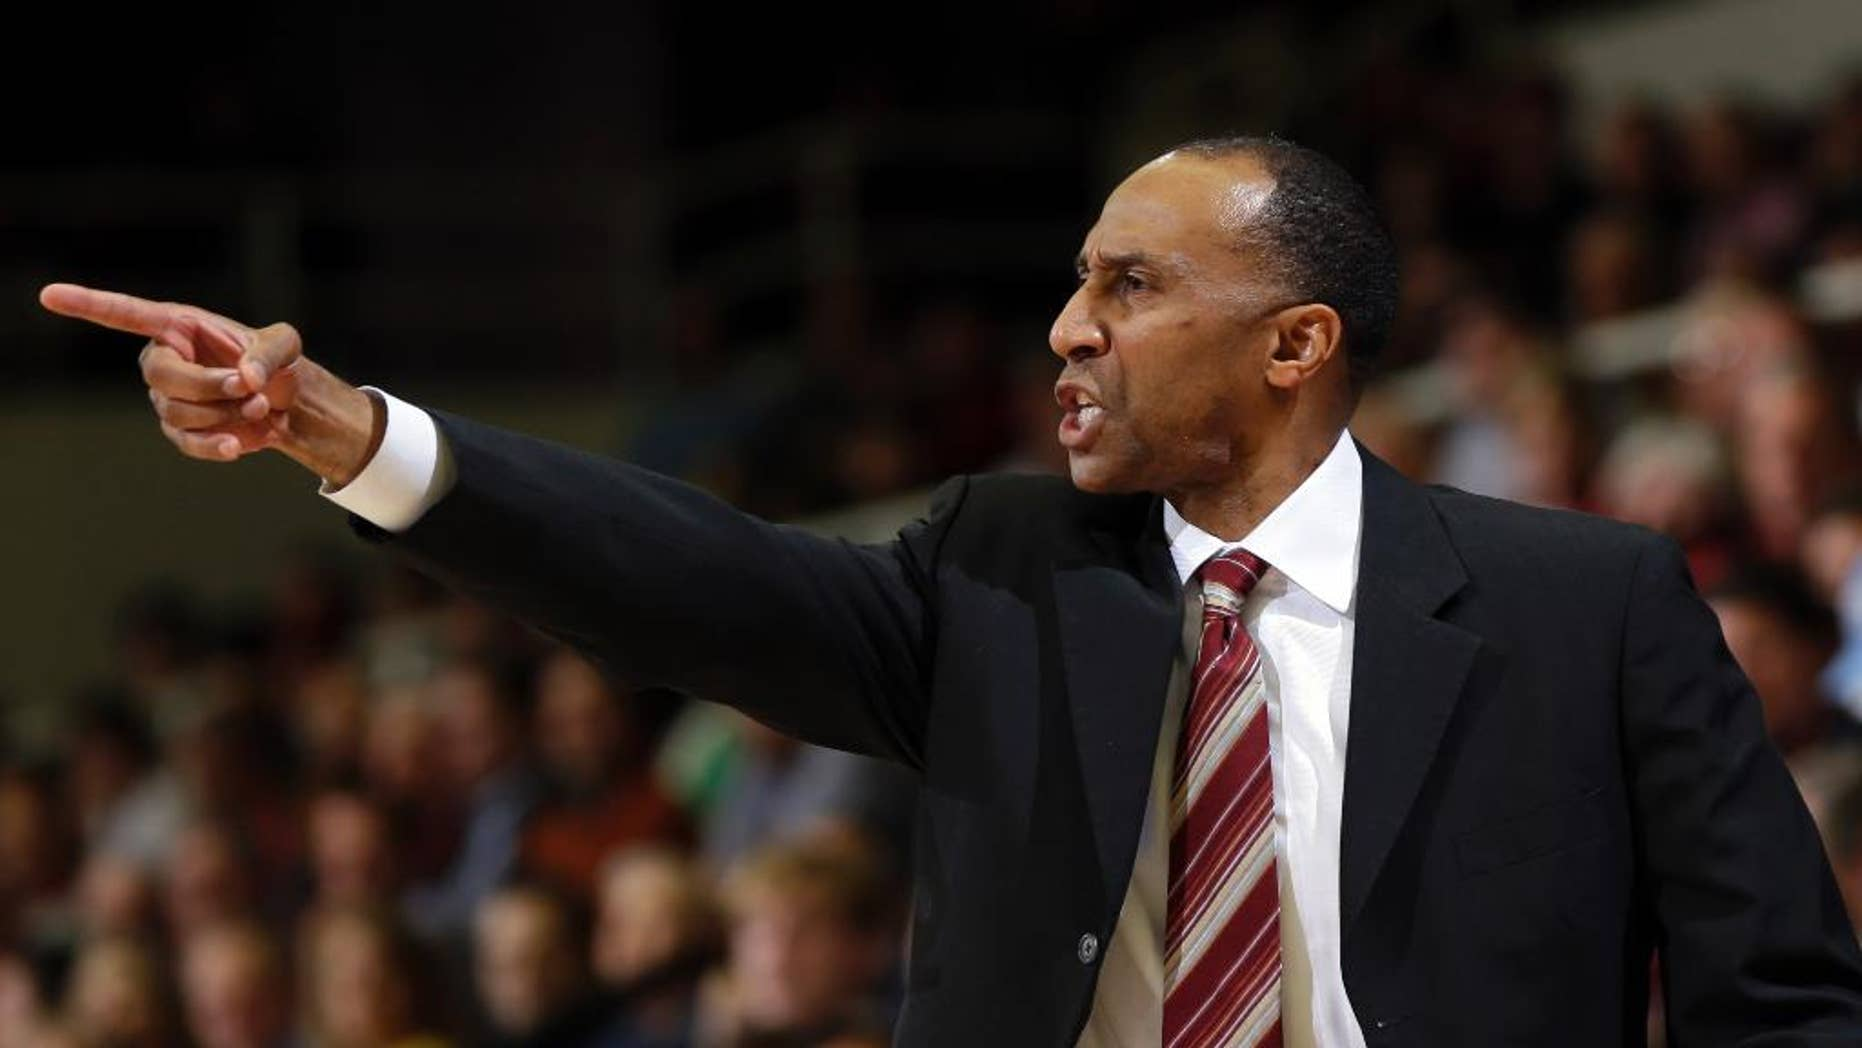 FILE - In this Feb. 20, 2014 file photo, Stanford head coach Johnny Dawkins argues a call during the first half of an NCAA college basketball game against Southern California, in Stanford, Calif. Dawkins is back on college basketball's big stage _ for the first time as a head coach after some special runs as a player.  (AP Photo/Marcio Jose Sanchez, File)